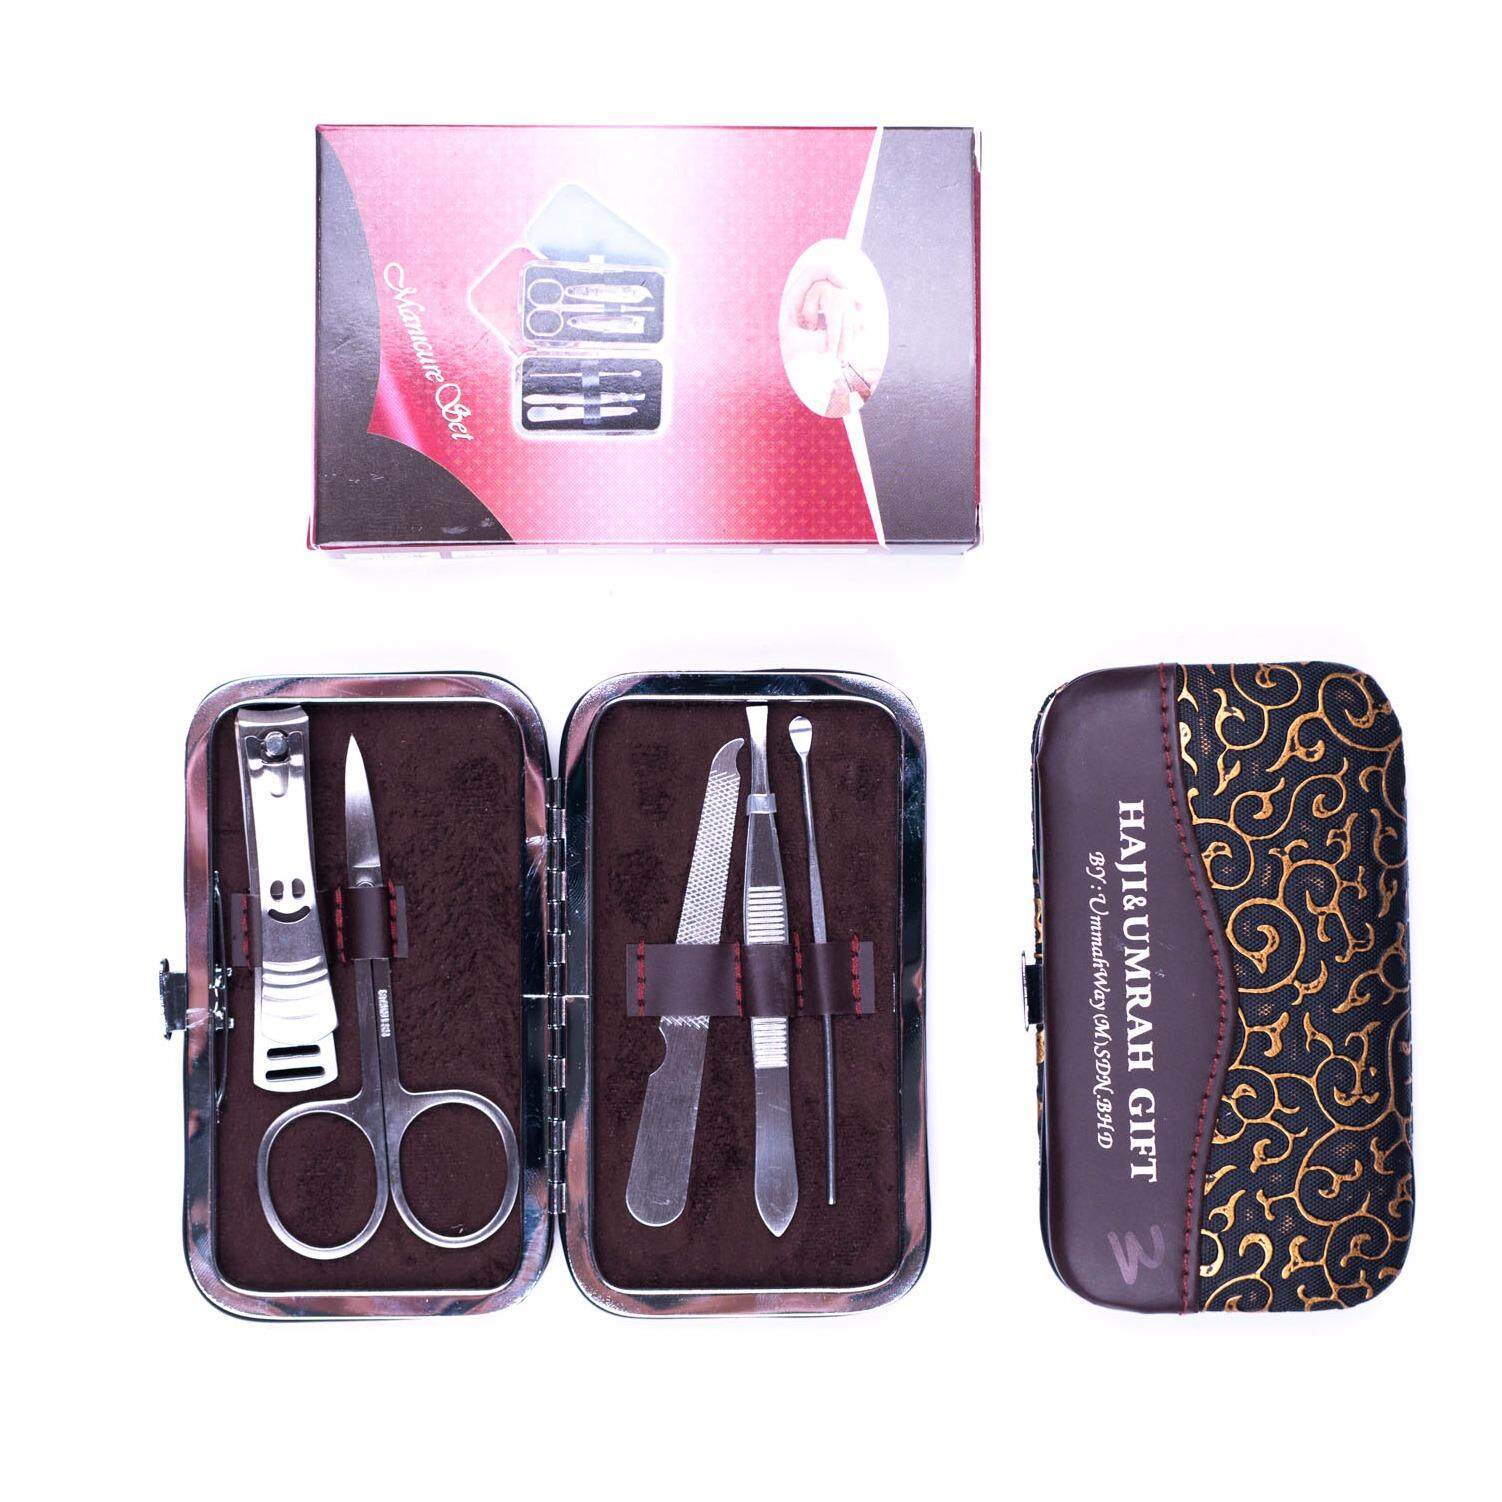 Manicure Set Nail Clippers Callus Hard Skin Pedicure Kit Tools With Case